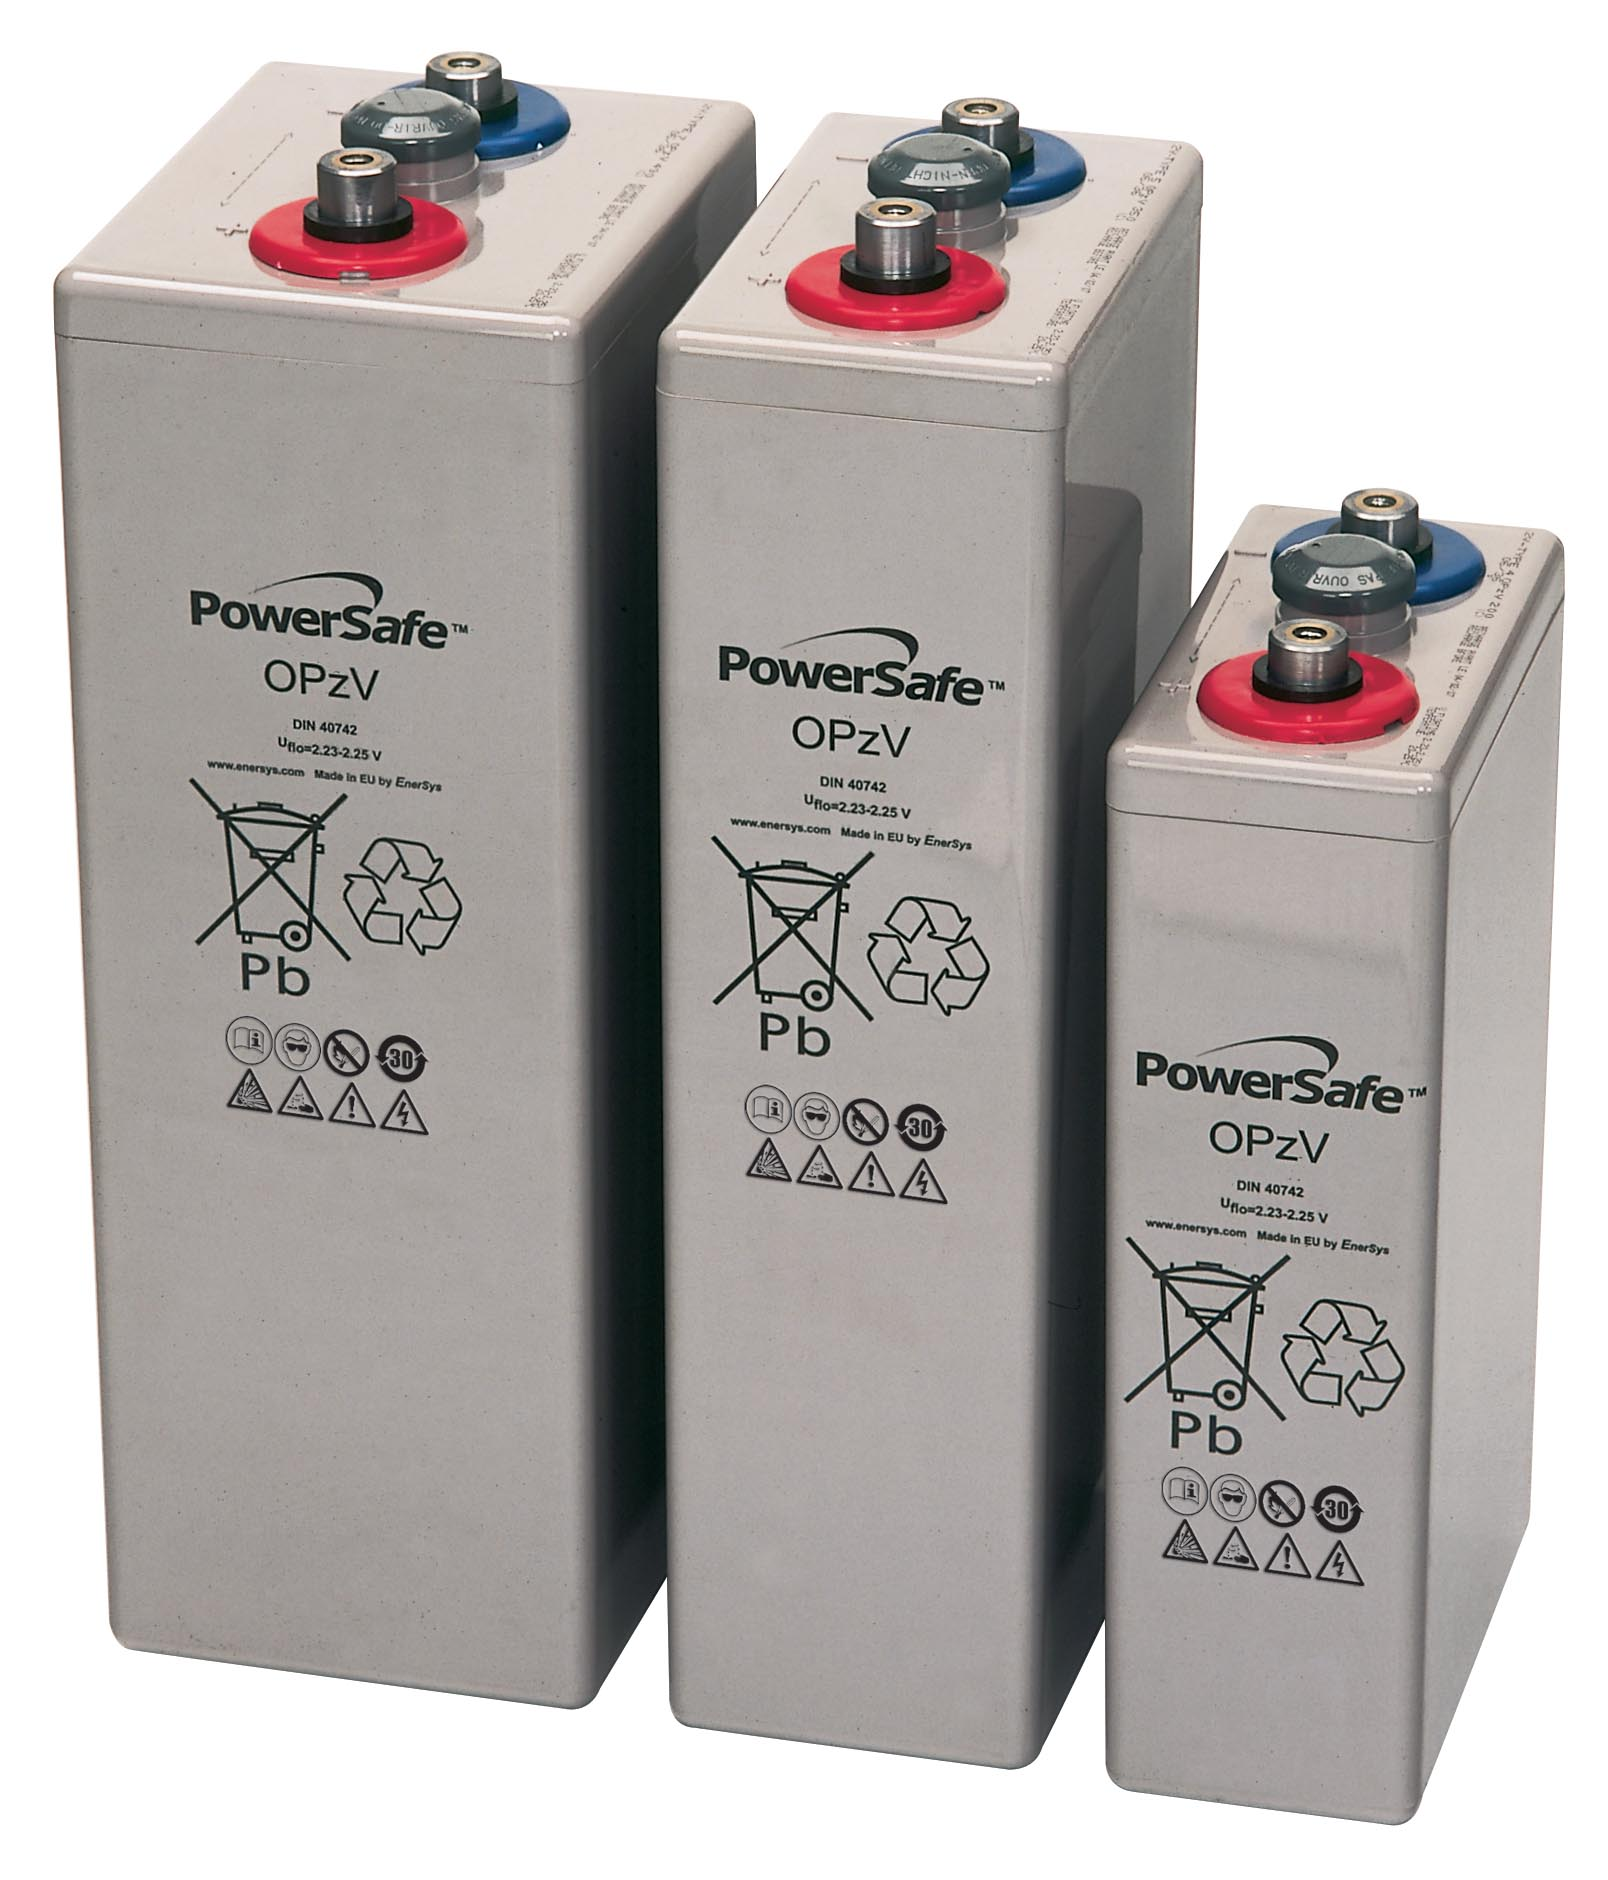 PowerSafe OPzV